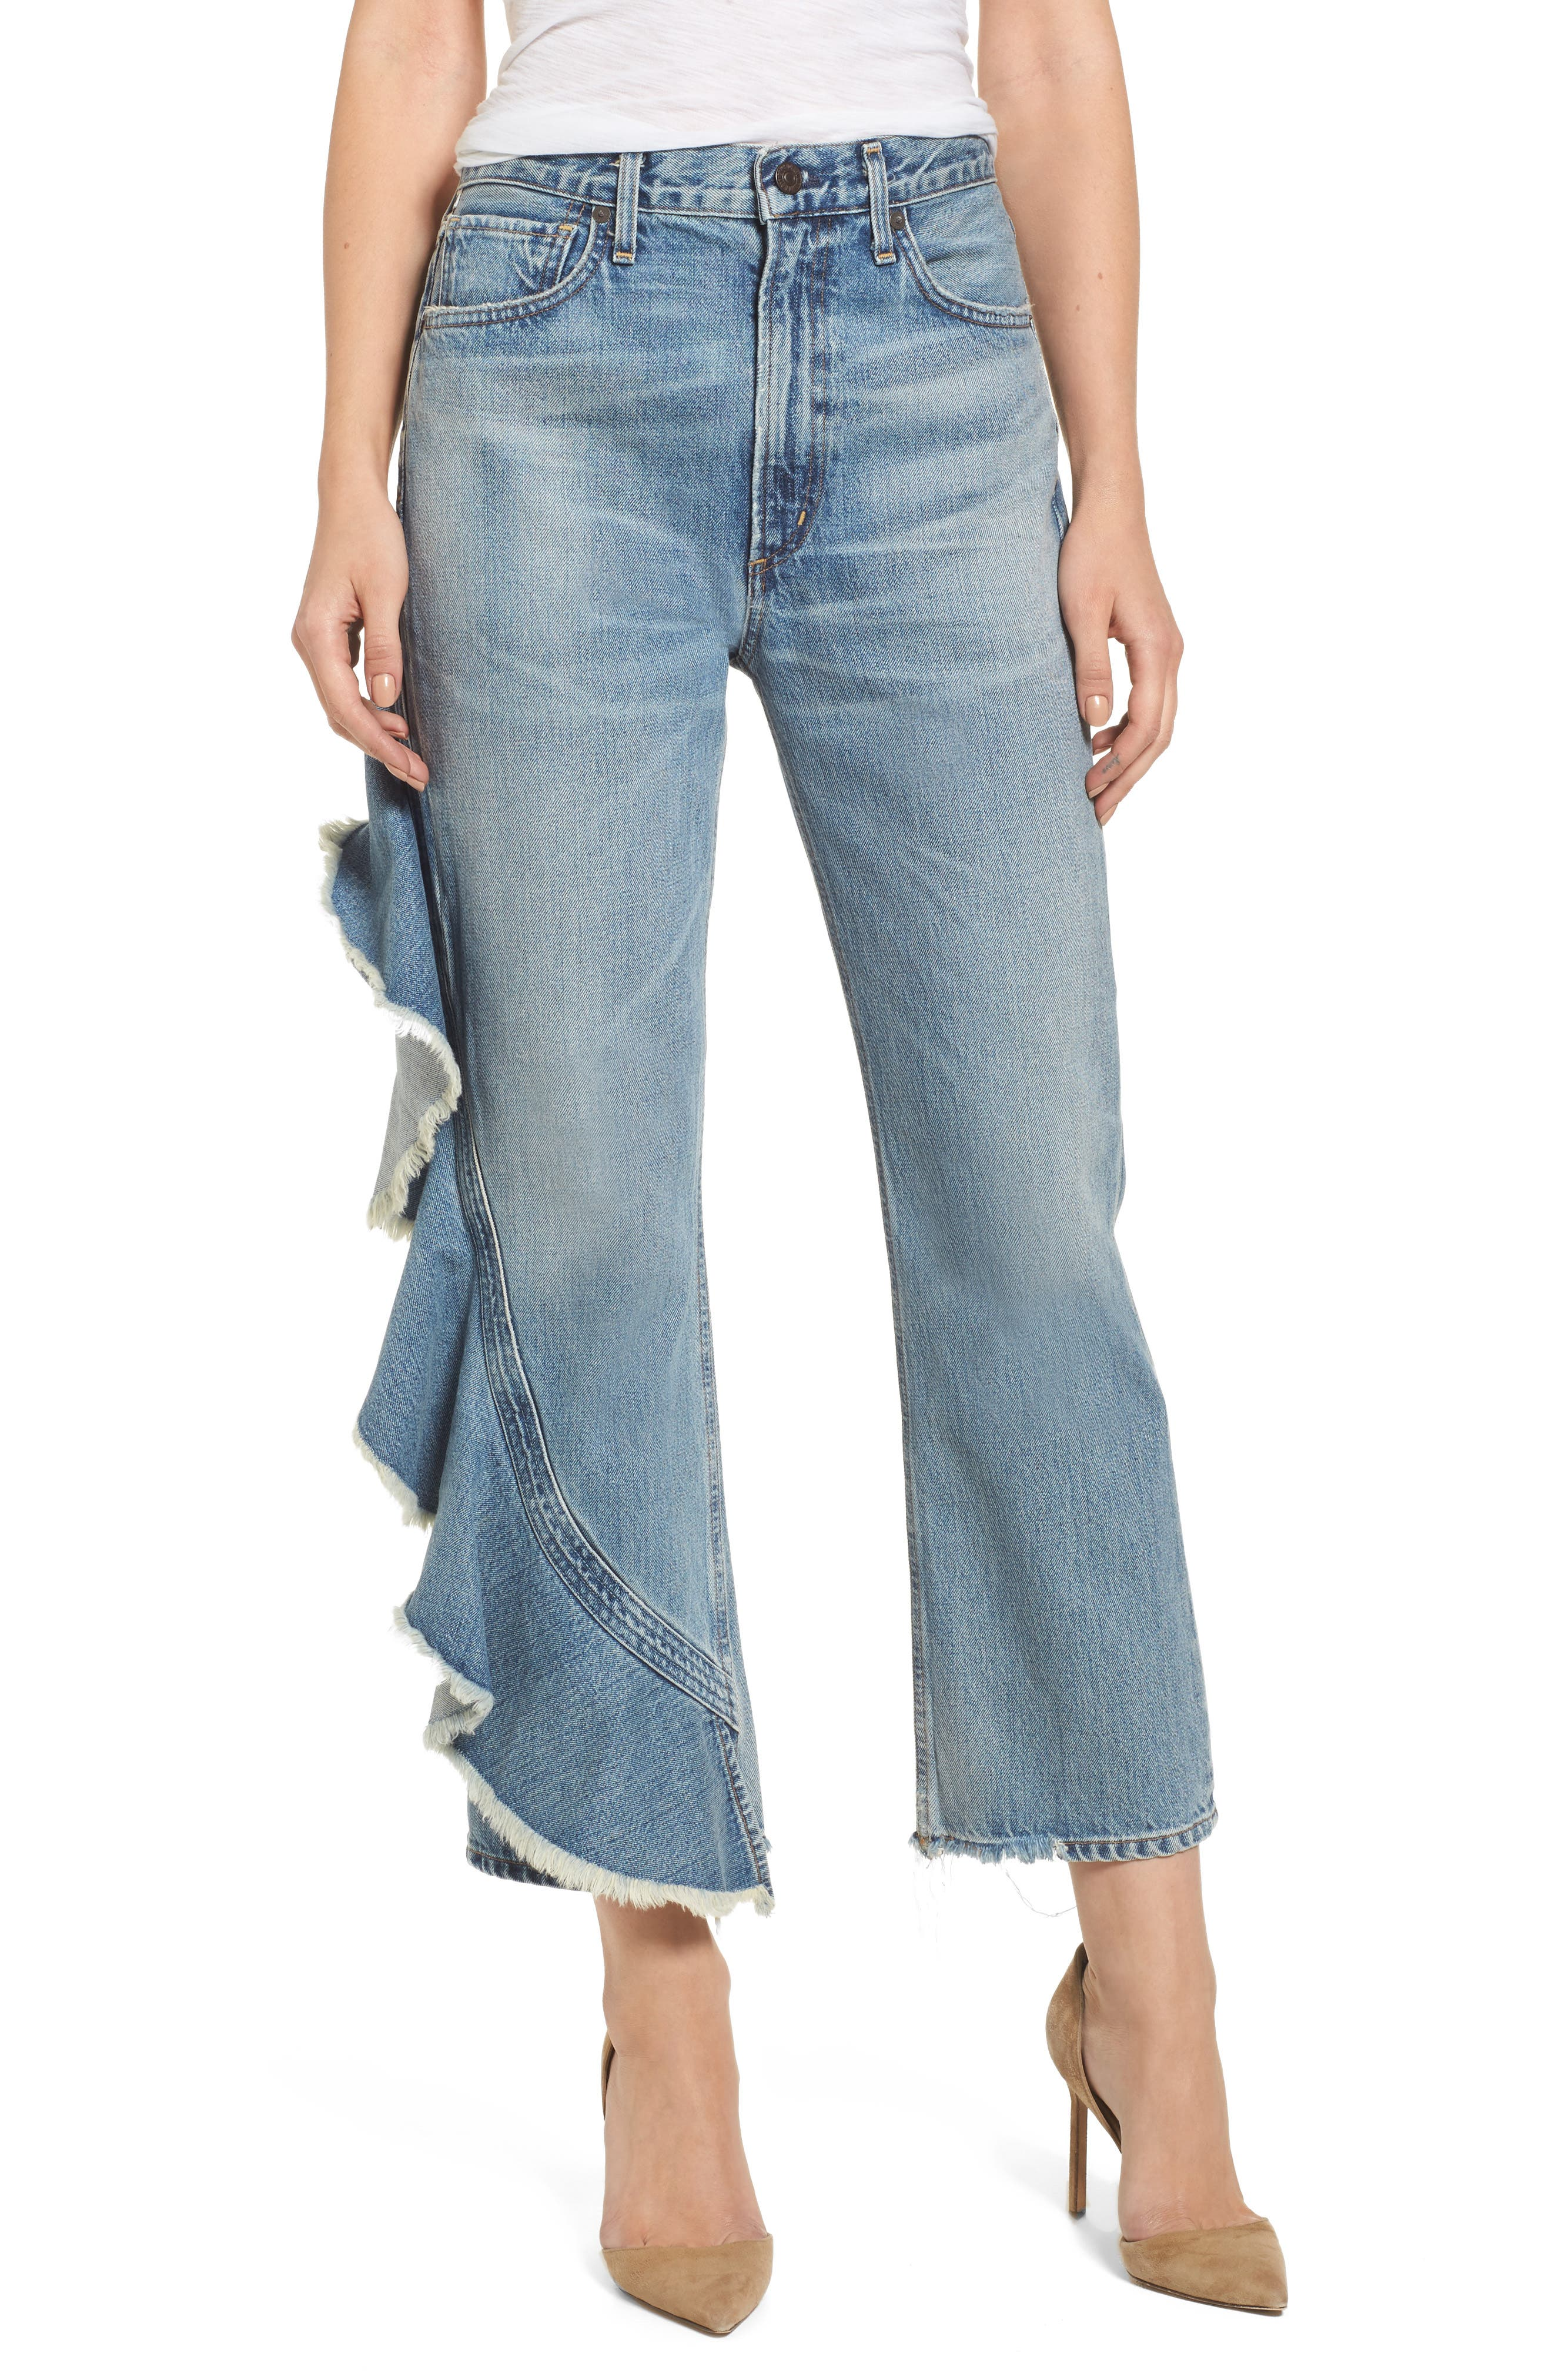 CITIZENS OF HUMANITY Estrella Side Ruffle High Waist Ankle Jeans